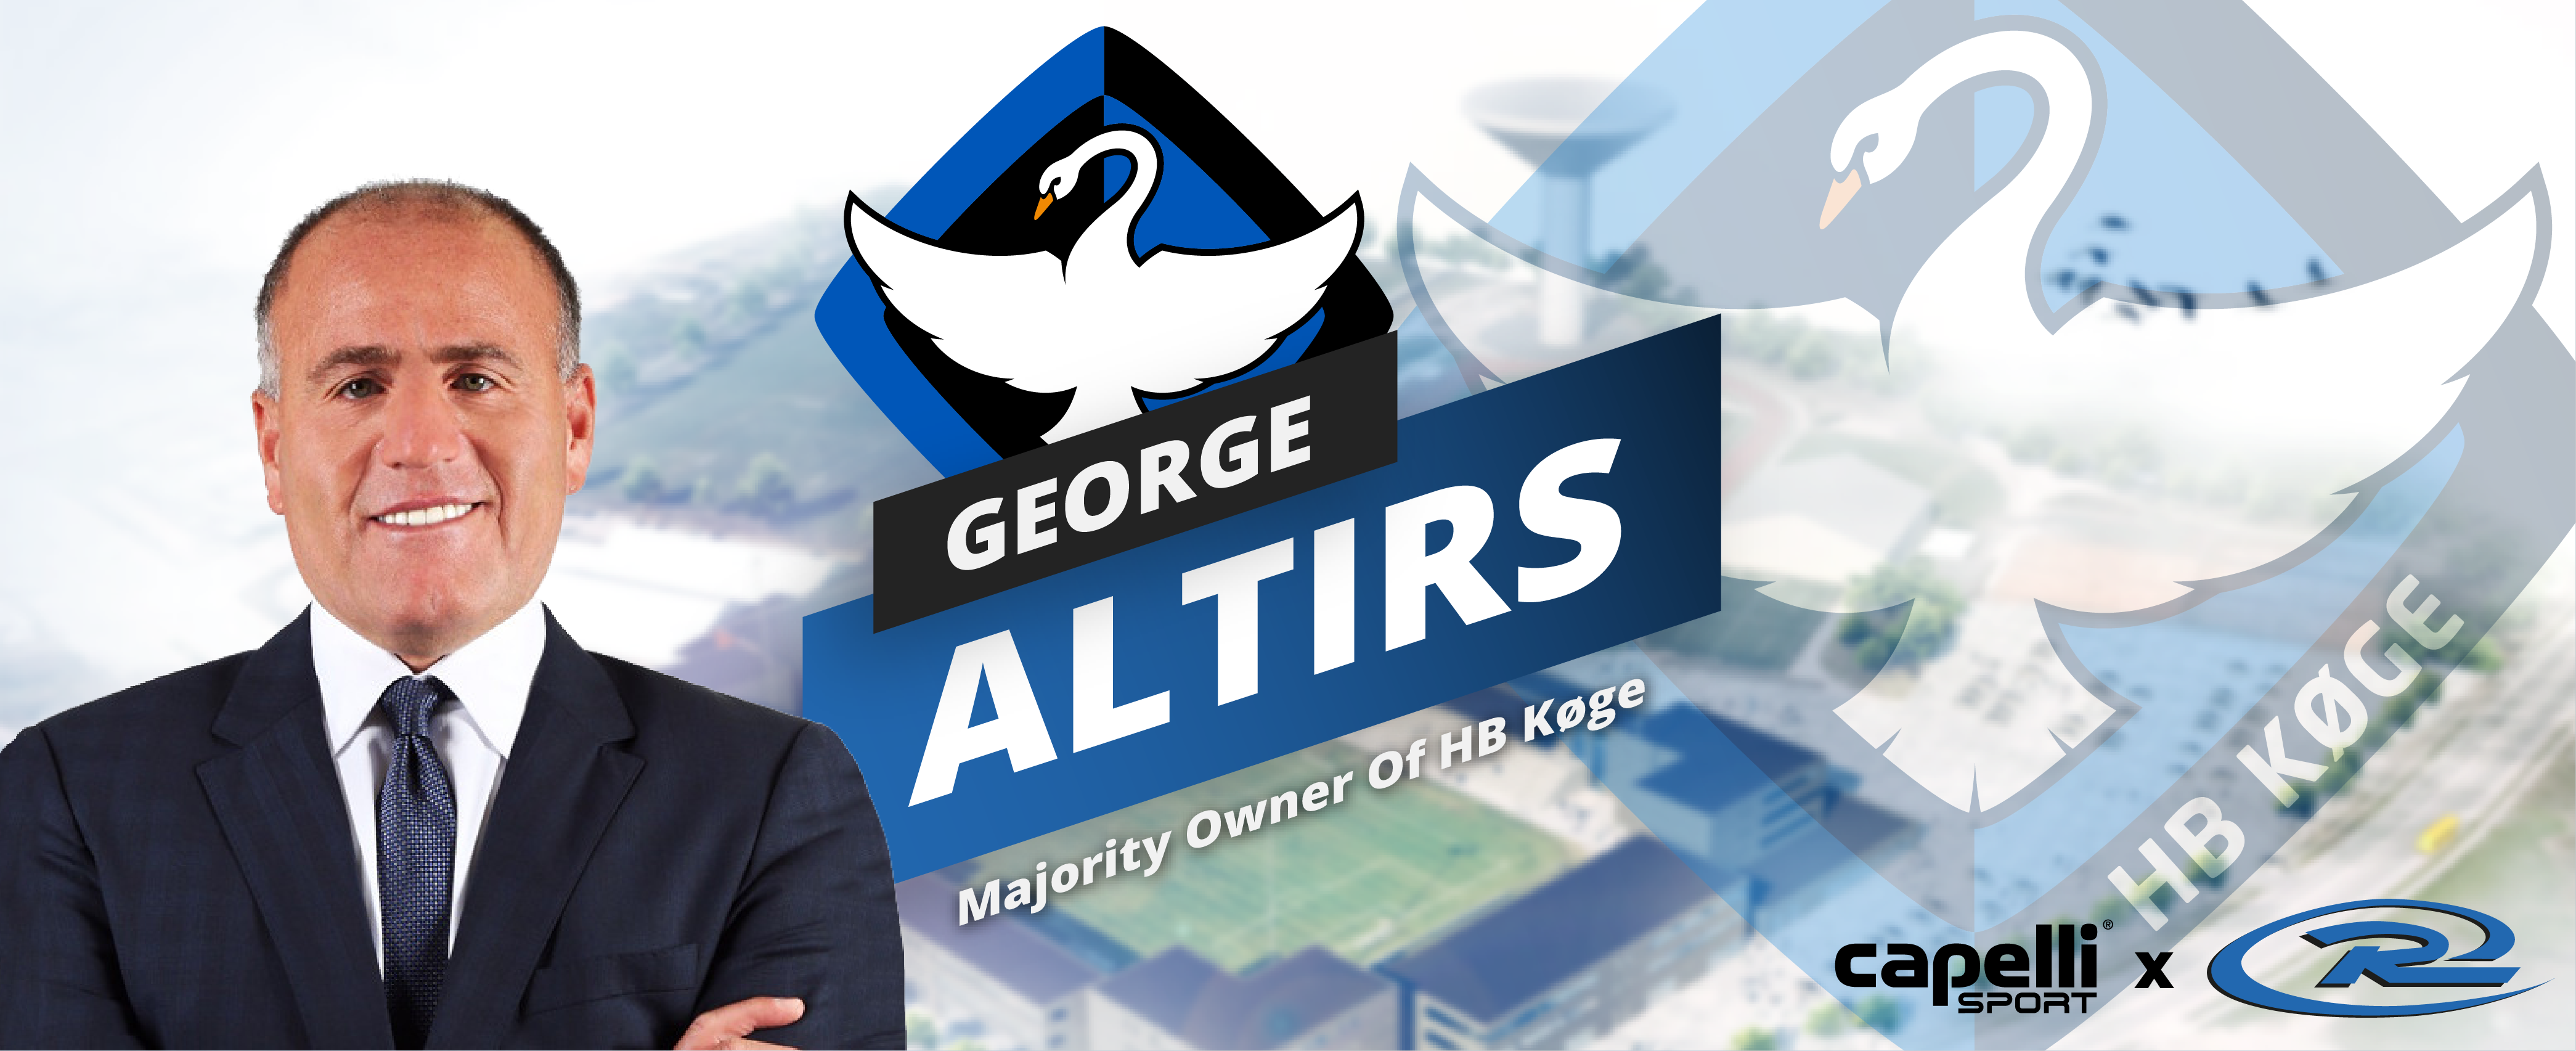 Slider-National-George-Altirs-01